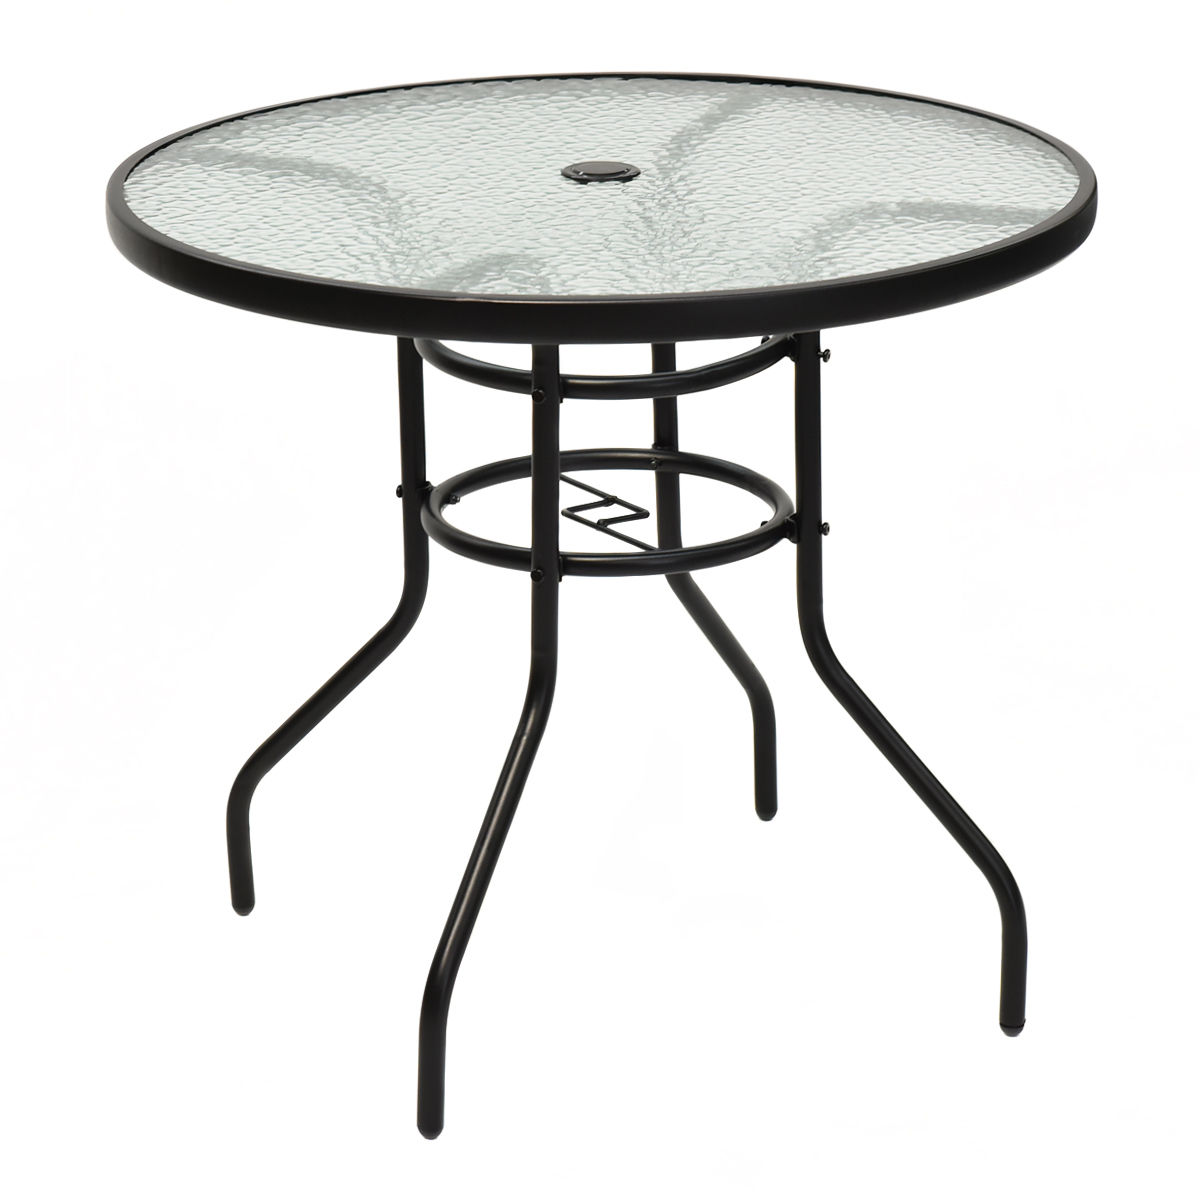 31.5'' Patio Round Table Tempered Glass Steel Frame Outdoor Pool Yard - image 7 de 7